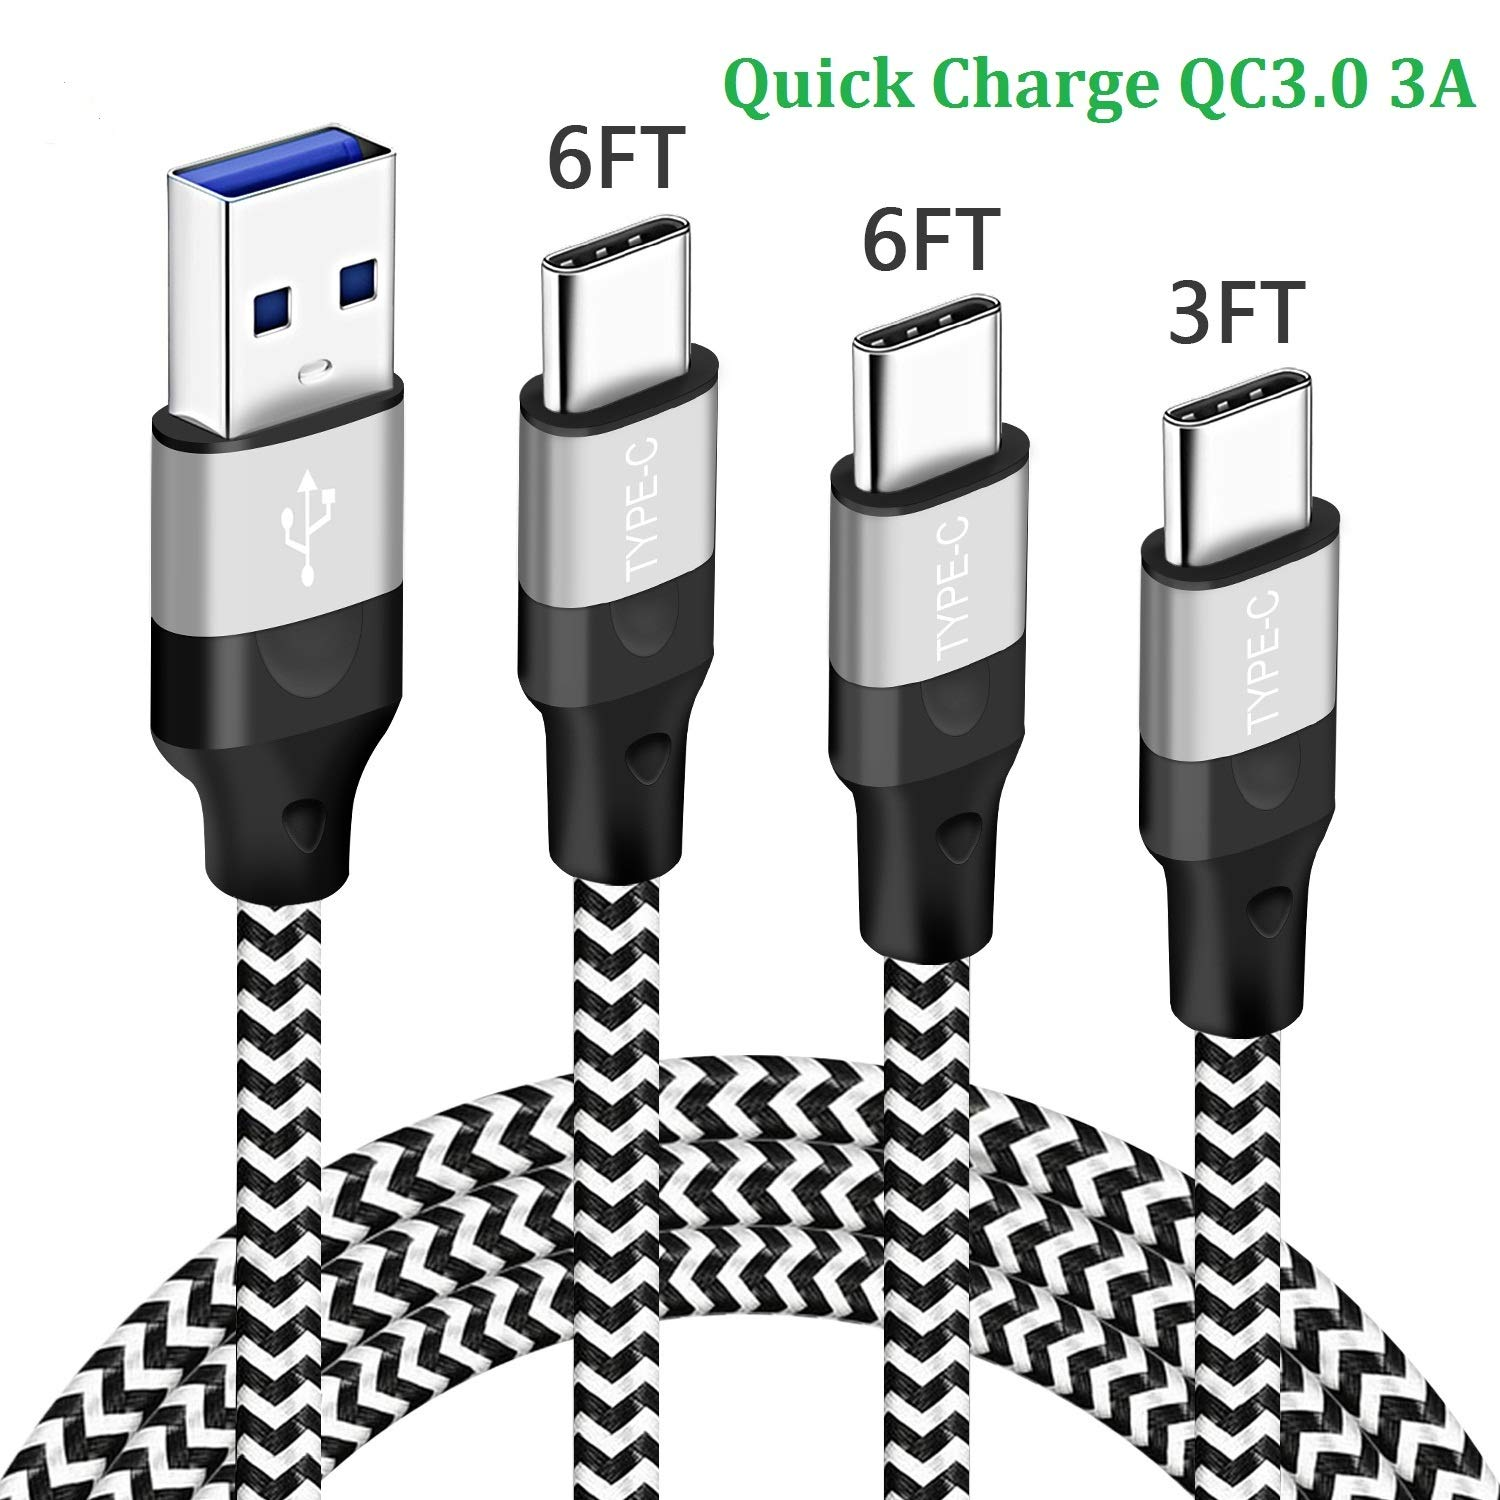 USB C Charging Cable Charger Cord for Moto G7 Play Power Z3,LG Stylo 5 V35 V40 Thinq,V30 V20 V30S Plus,Motorola Z2 Z Force Droid Edition,USB 3.0 Type C Fast/Quick Charge Power Data Phone Wire 3/6/6-FT